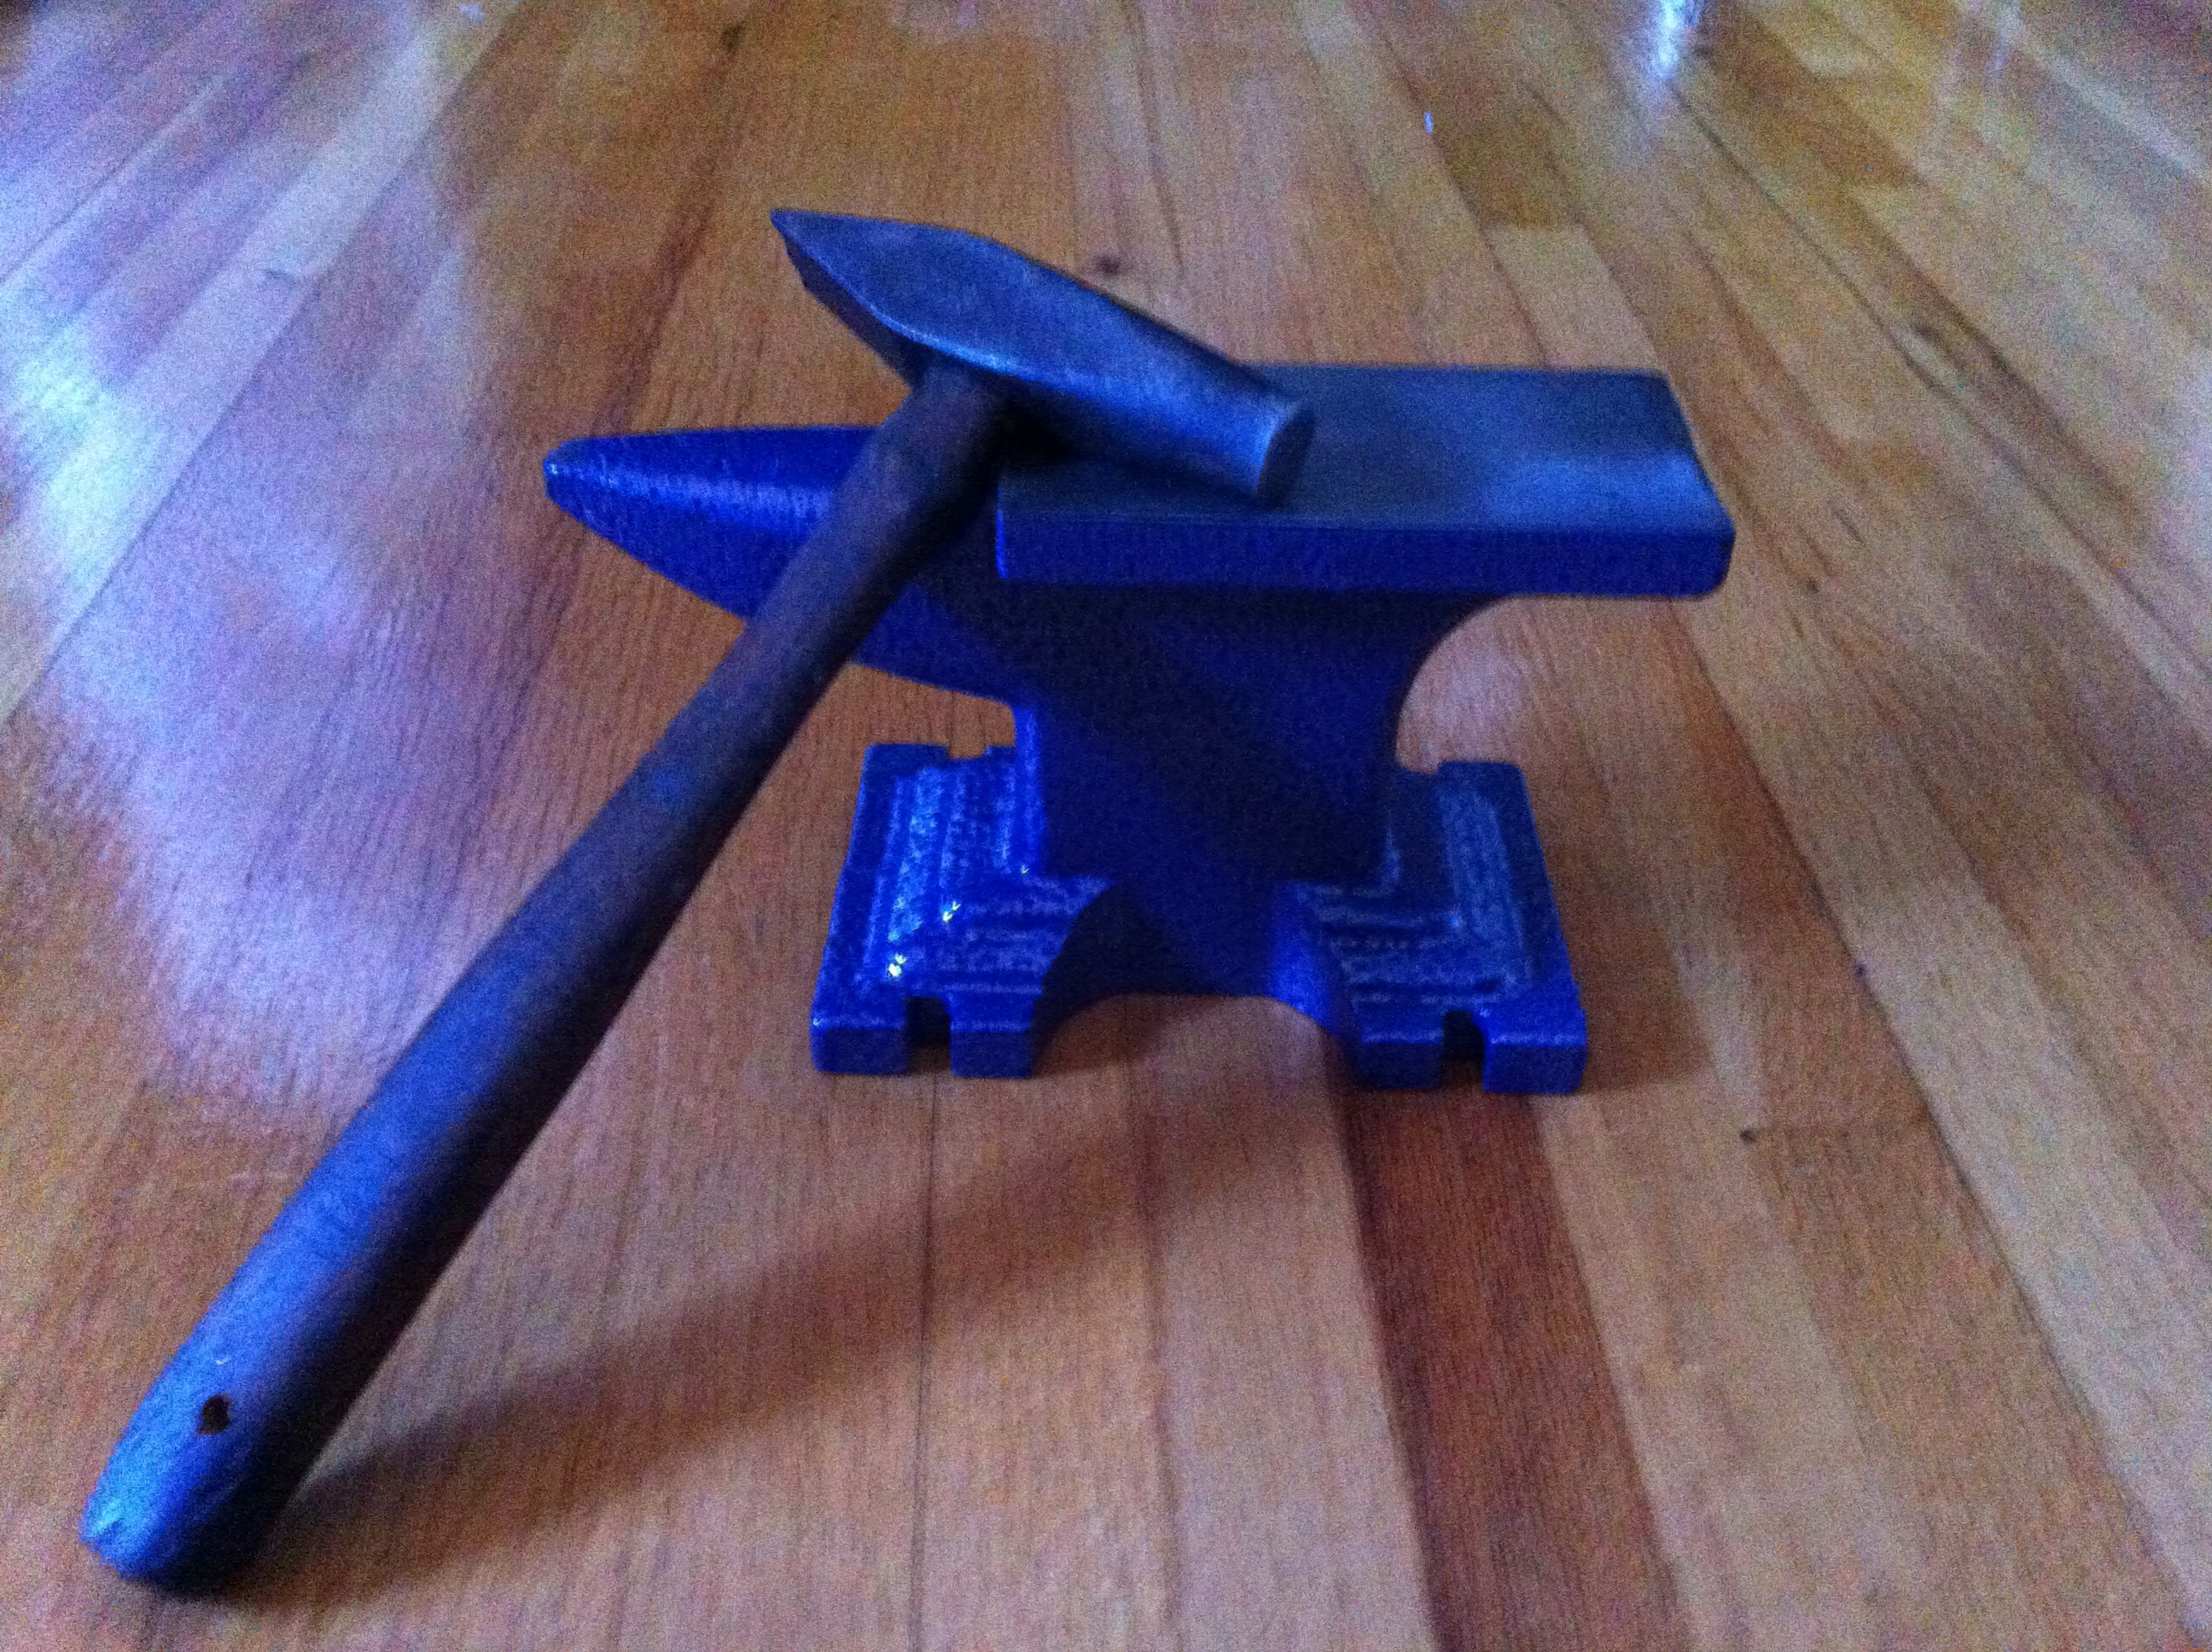 How To Buy An Anvil